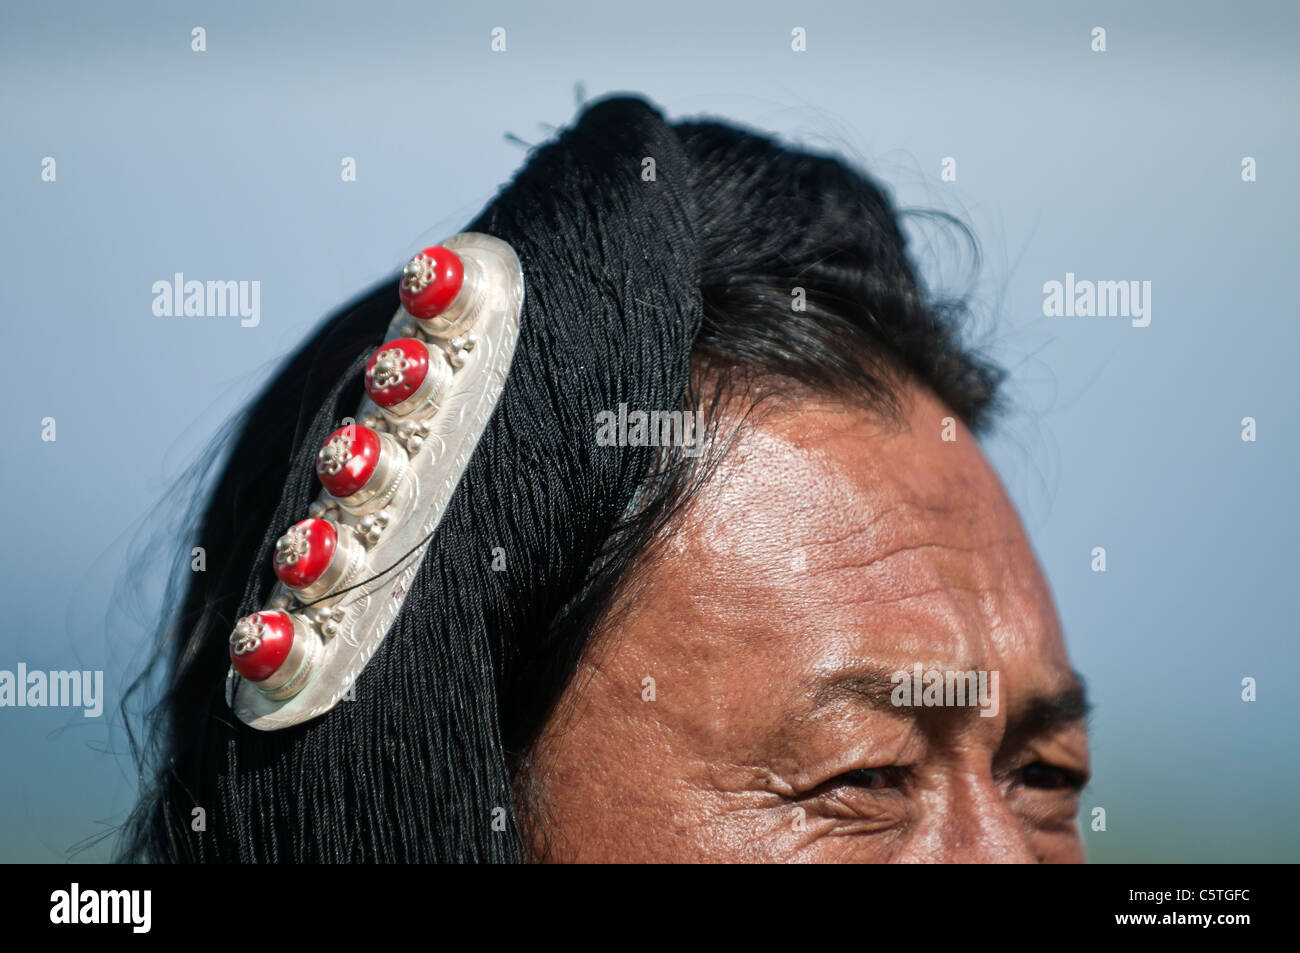 Wearing a silver hair piece, an ethnic Tibetan man attends folk festival, Haibei, Qinghai Province, China - Stock Image